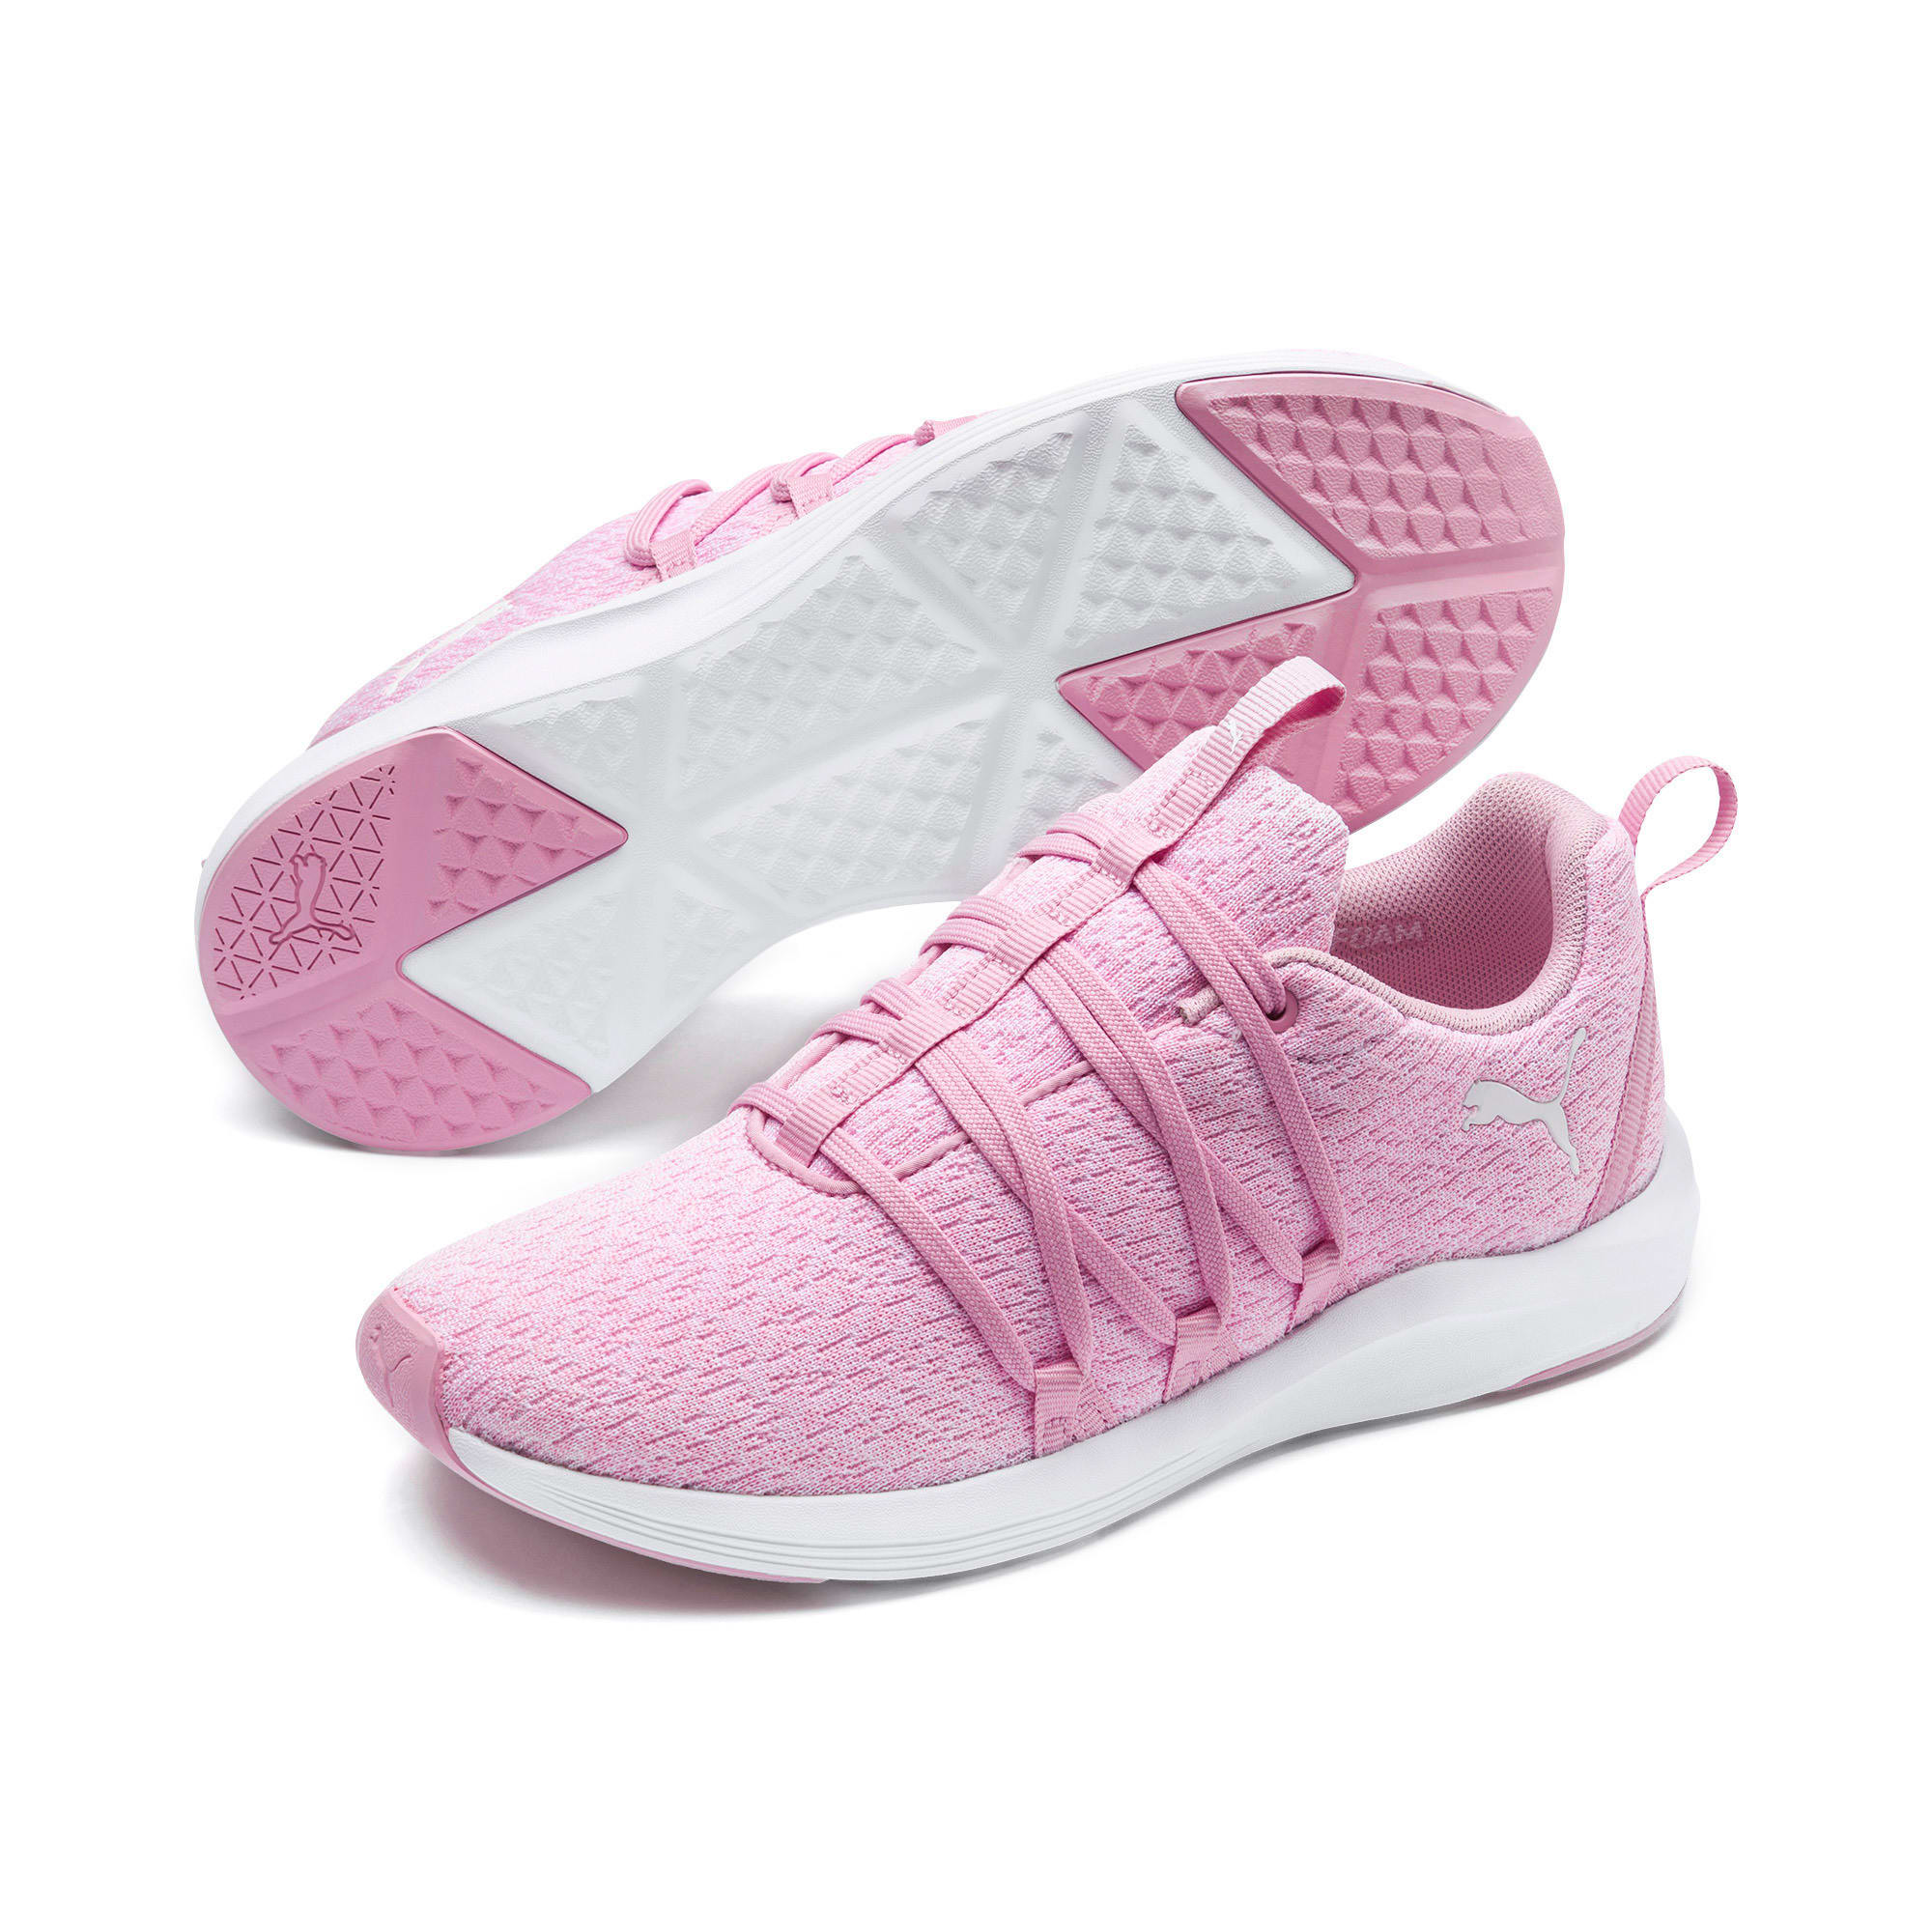 Prowl Alt Knit Women's Training Shoes, Pale Pink-Puma White, large